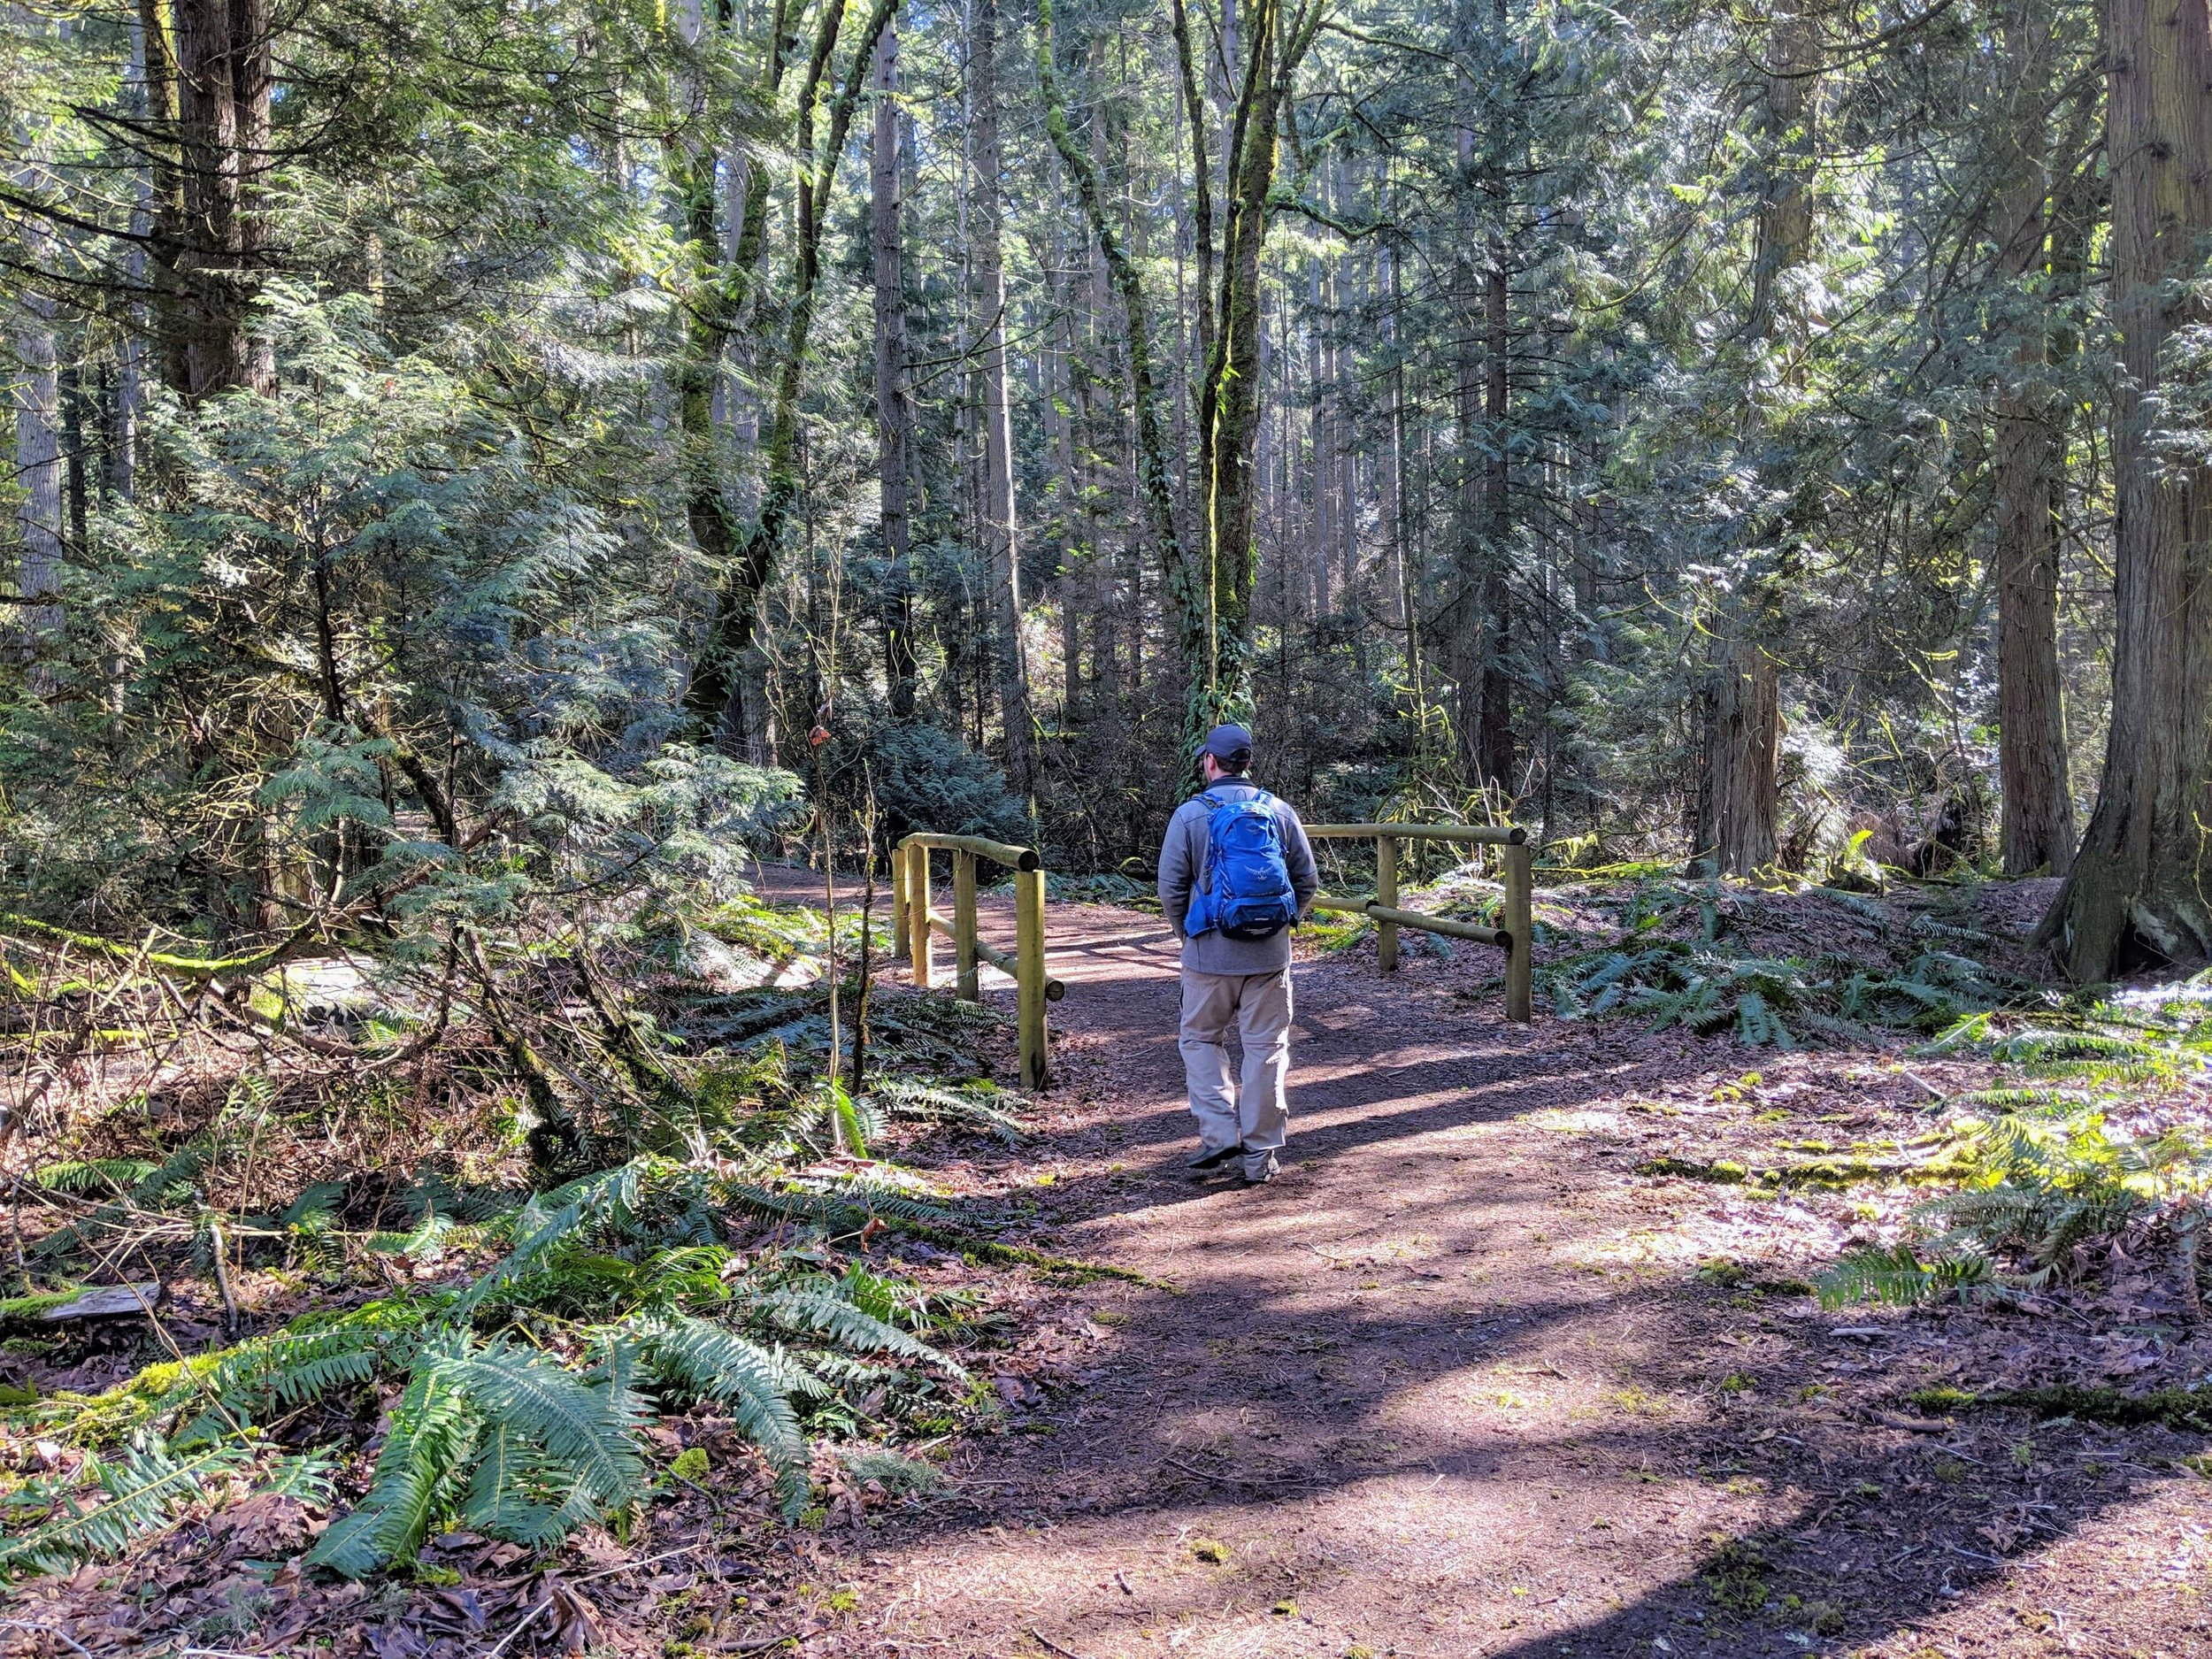 Hiking in Bridle Trails State Park